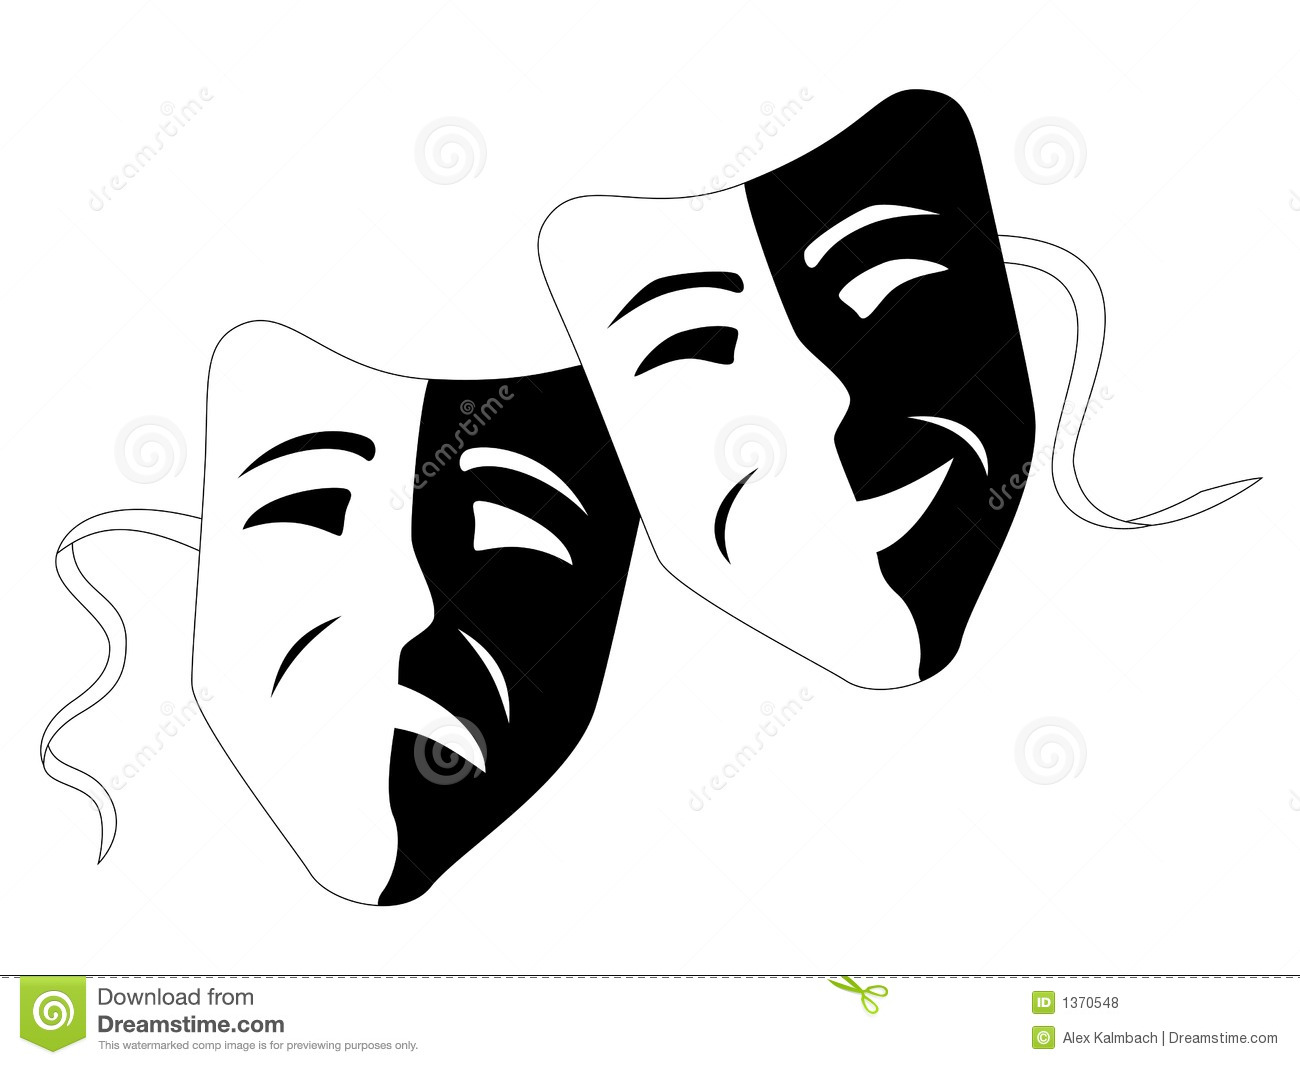 Theatre masks (Tragedy comedy)